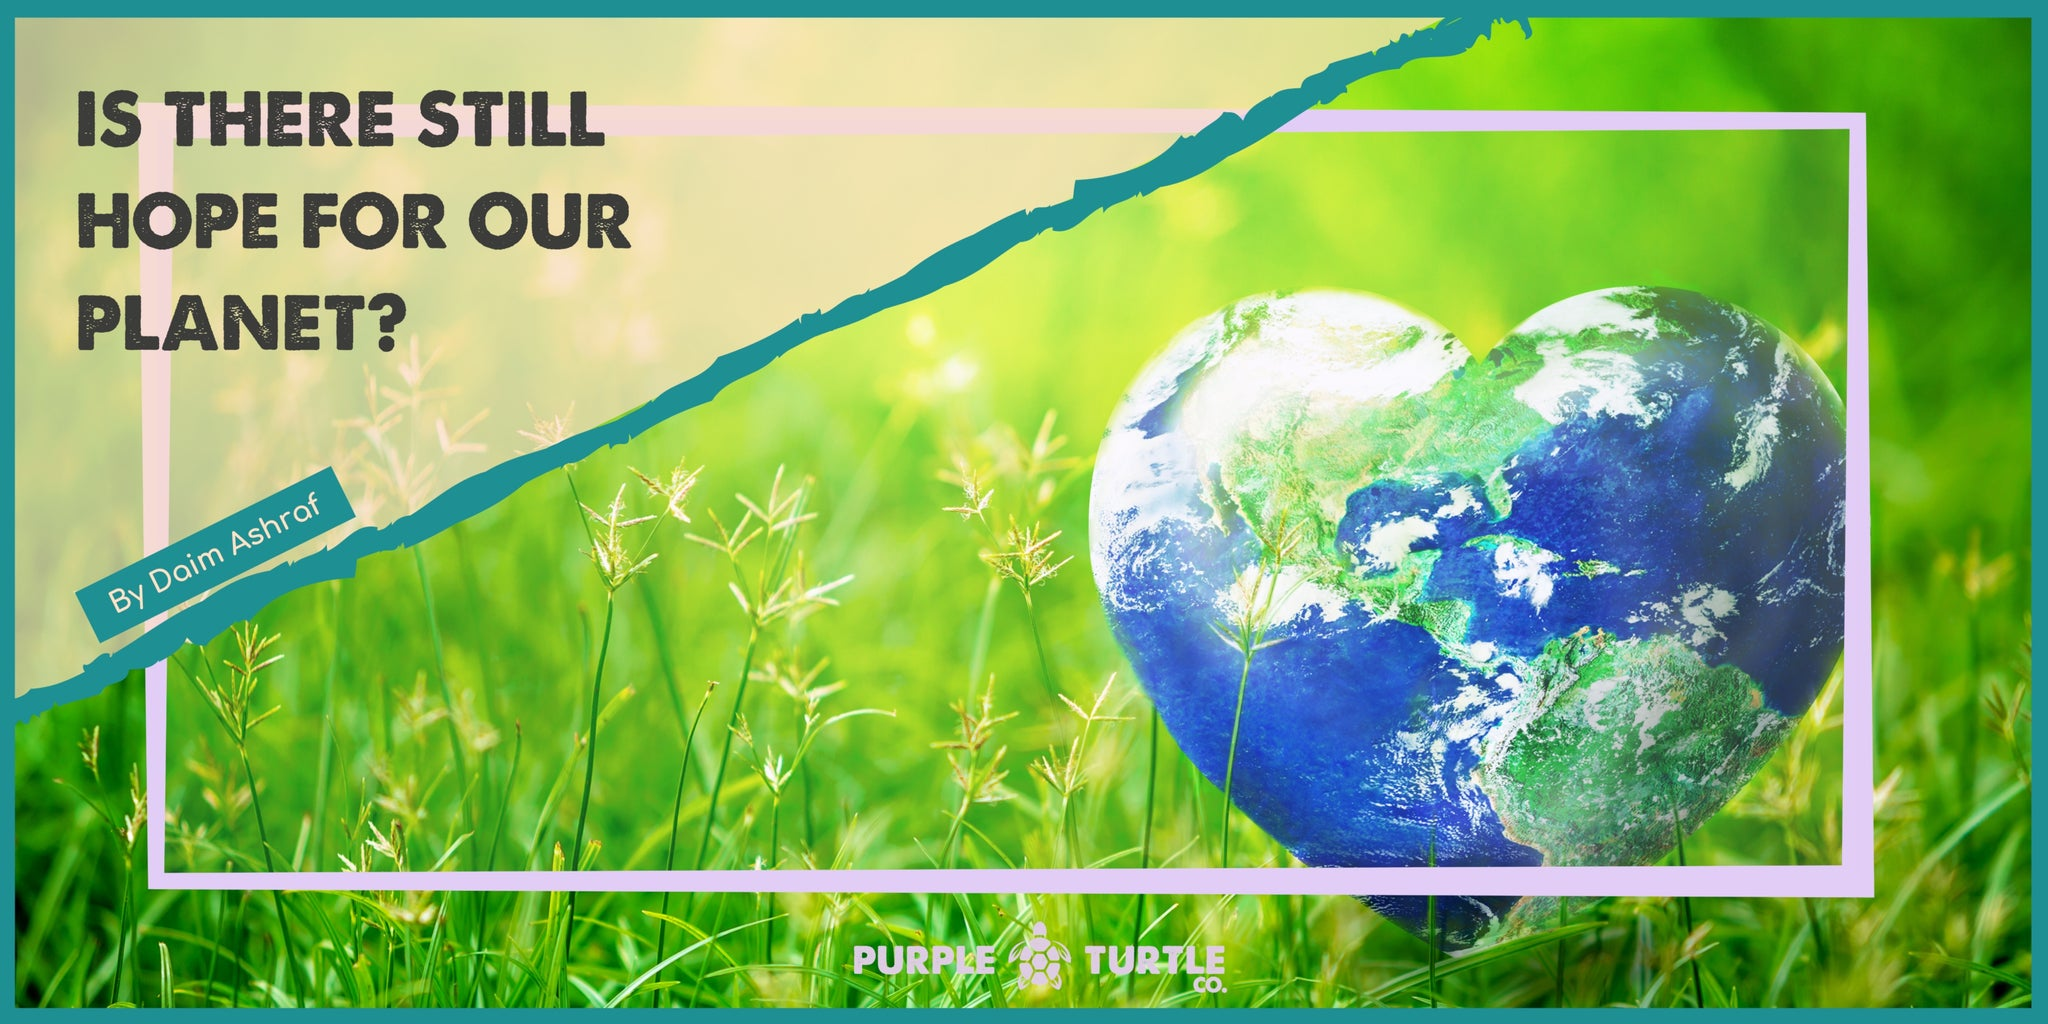 Heart shaped earth surrounded by green grass and flowers. This is framed by the Purple Turtle logo and blog author and title.